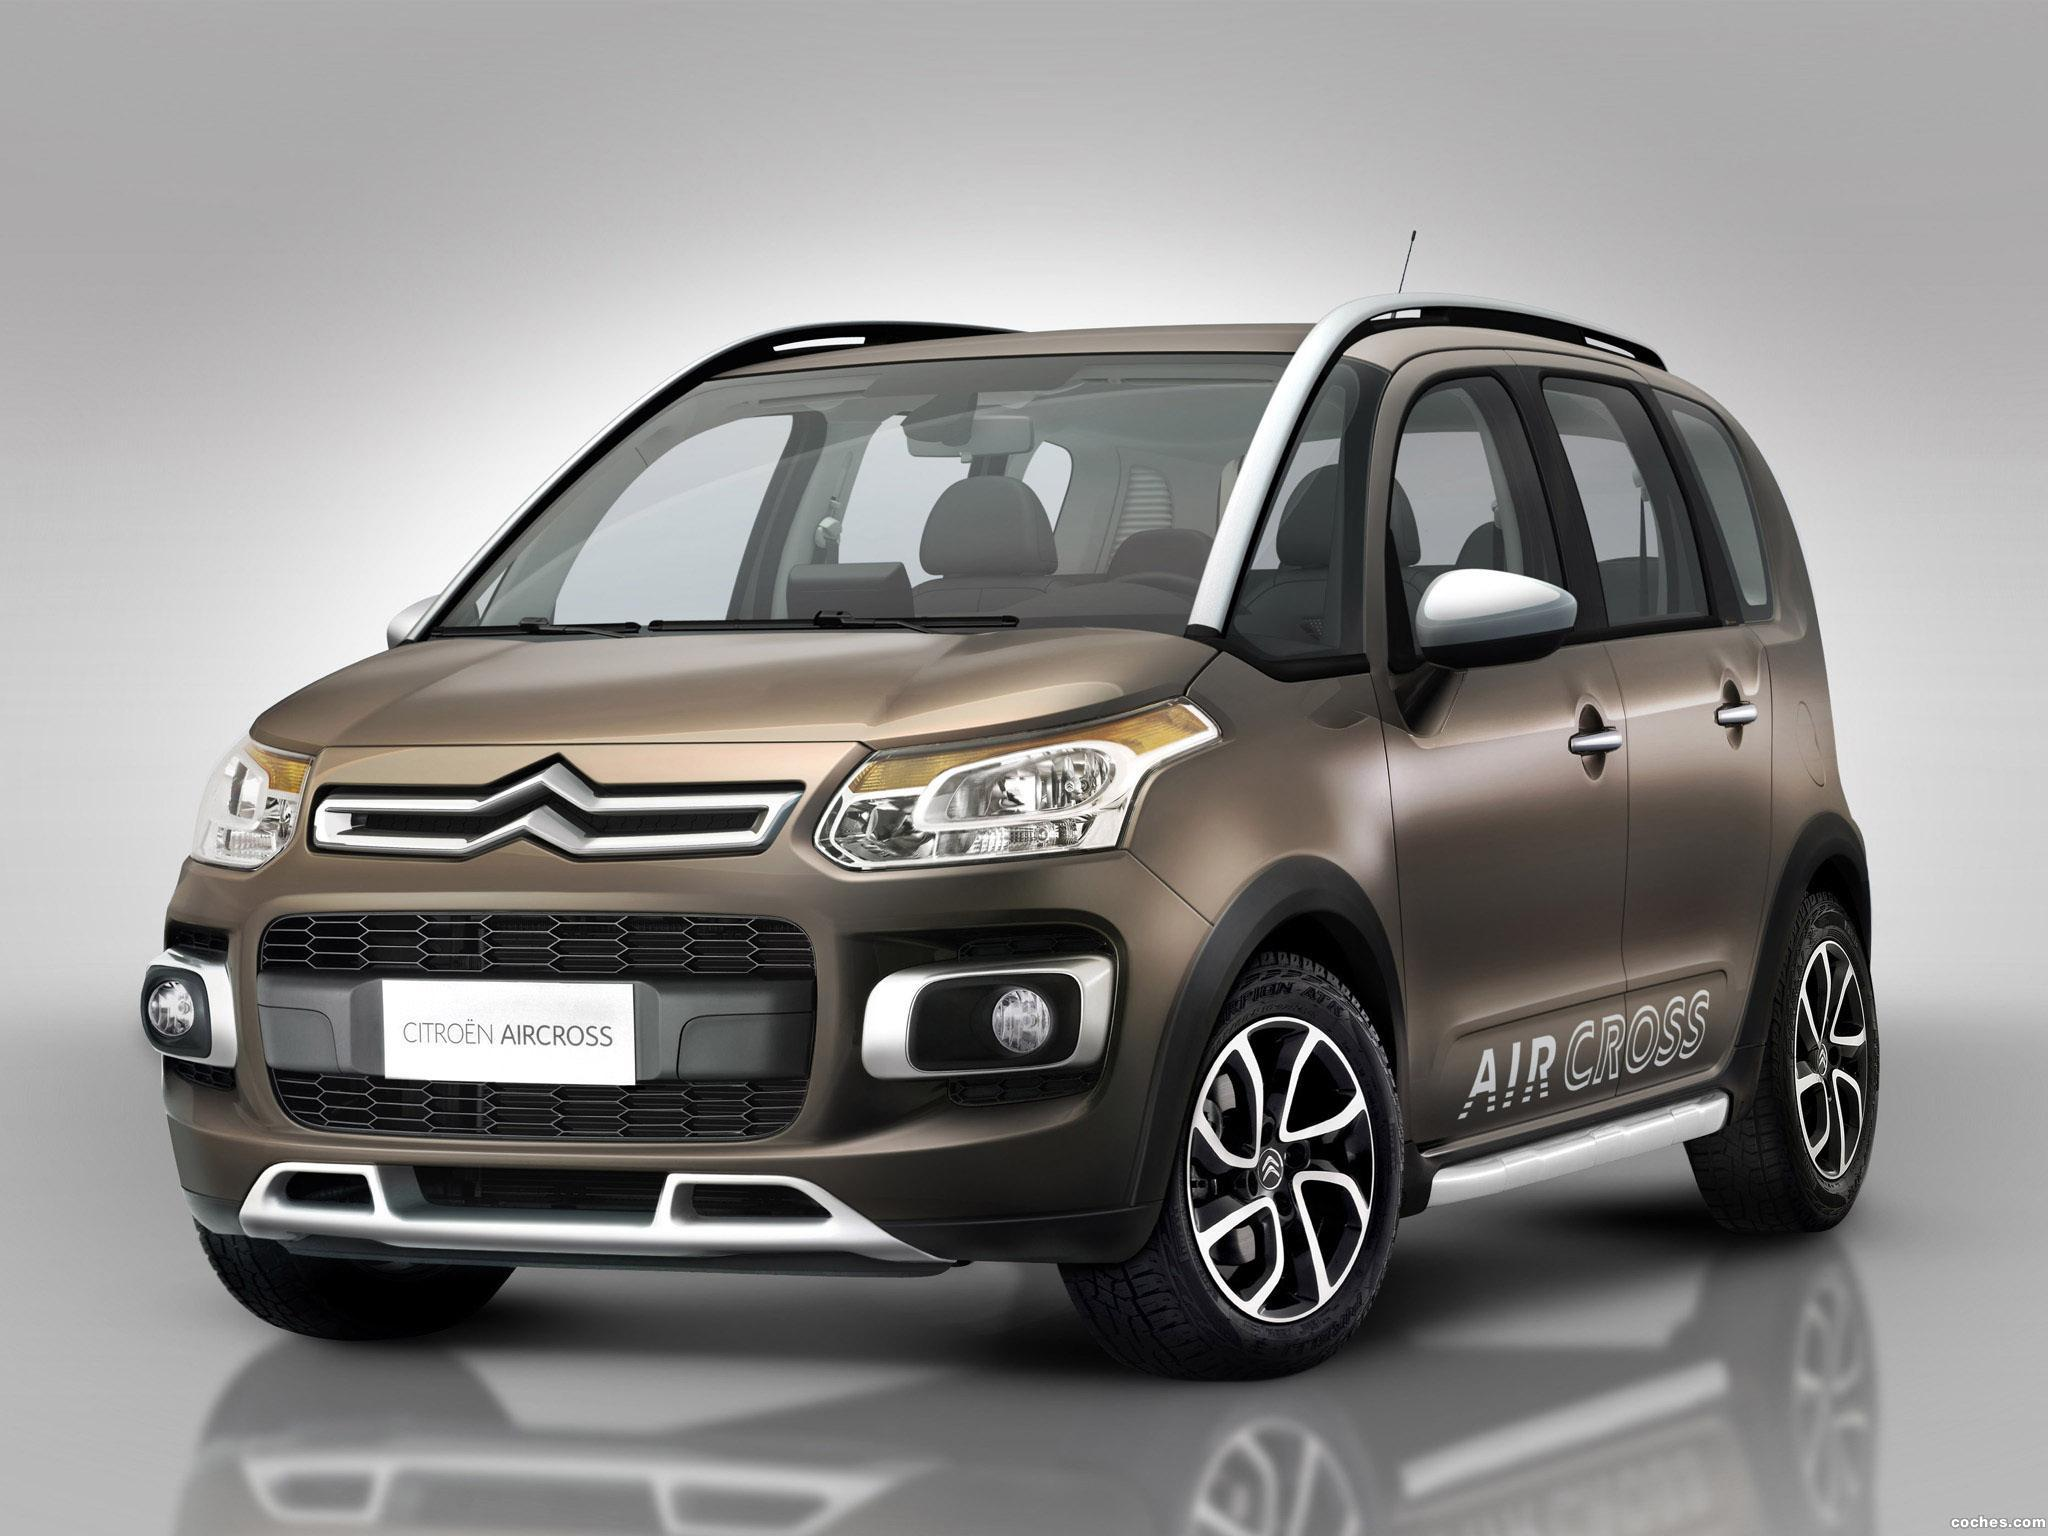 fotos de citroen c4 aircross 2010. Black Bedroom Furniture Sets. Home Design Ideas